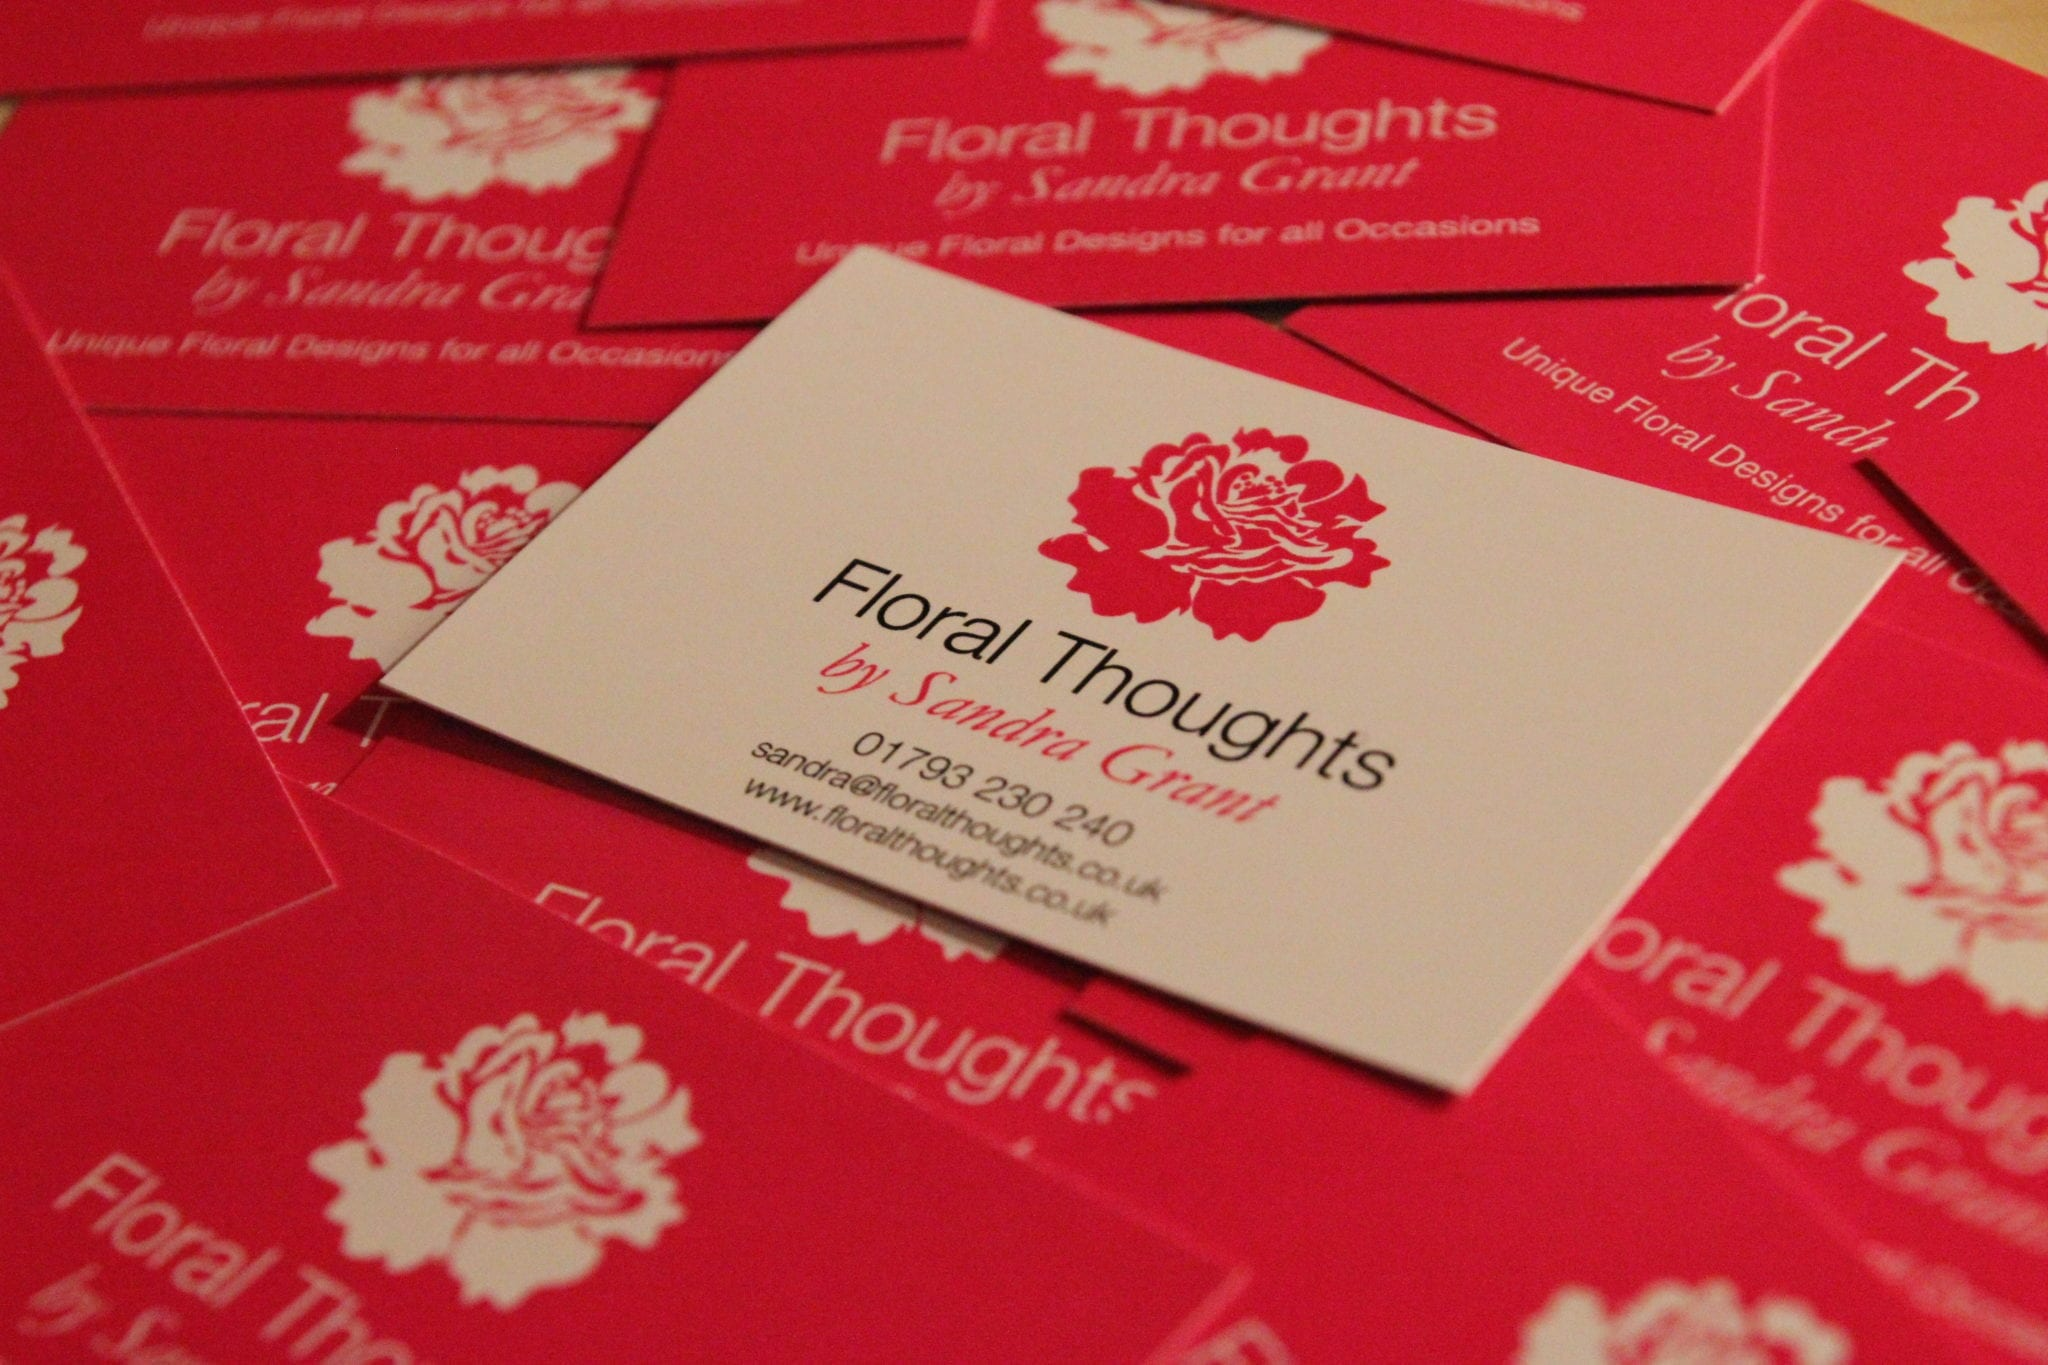 logo-design-new-business-cards-for-floral-thoughts.jpg